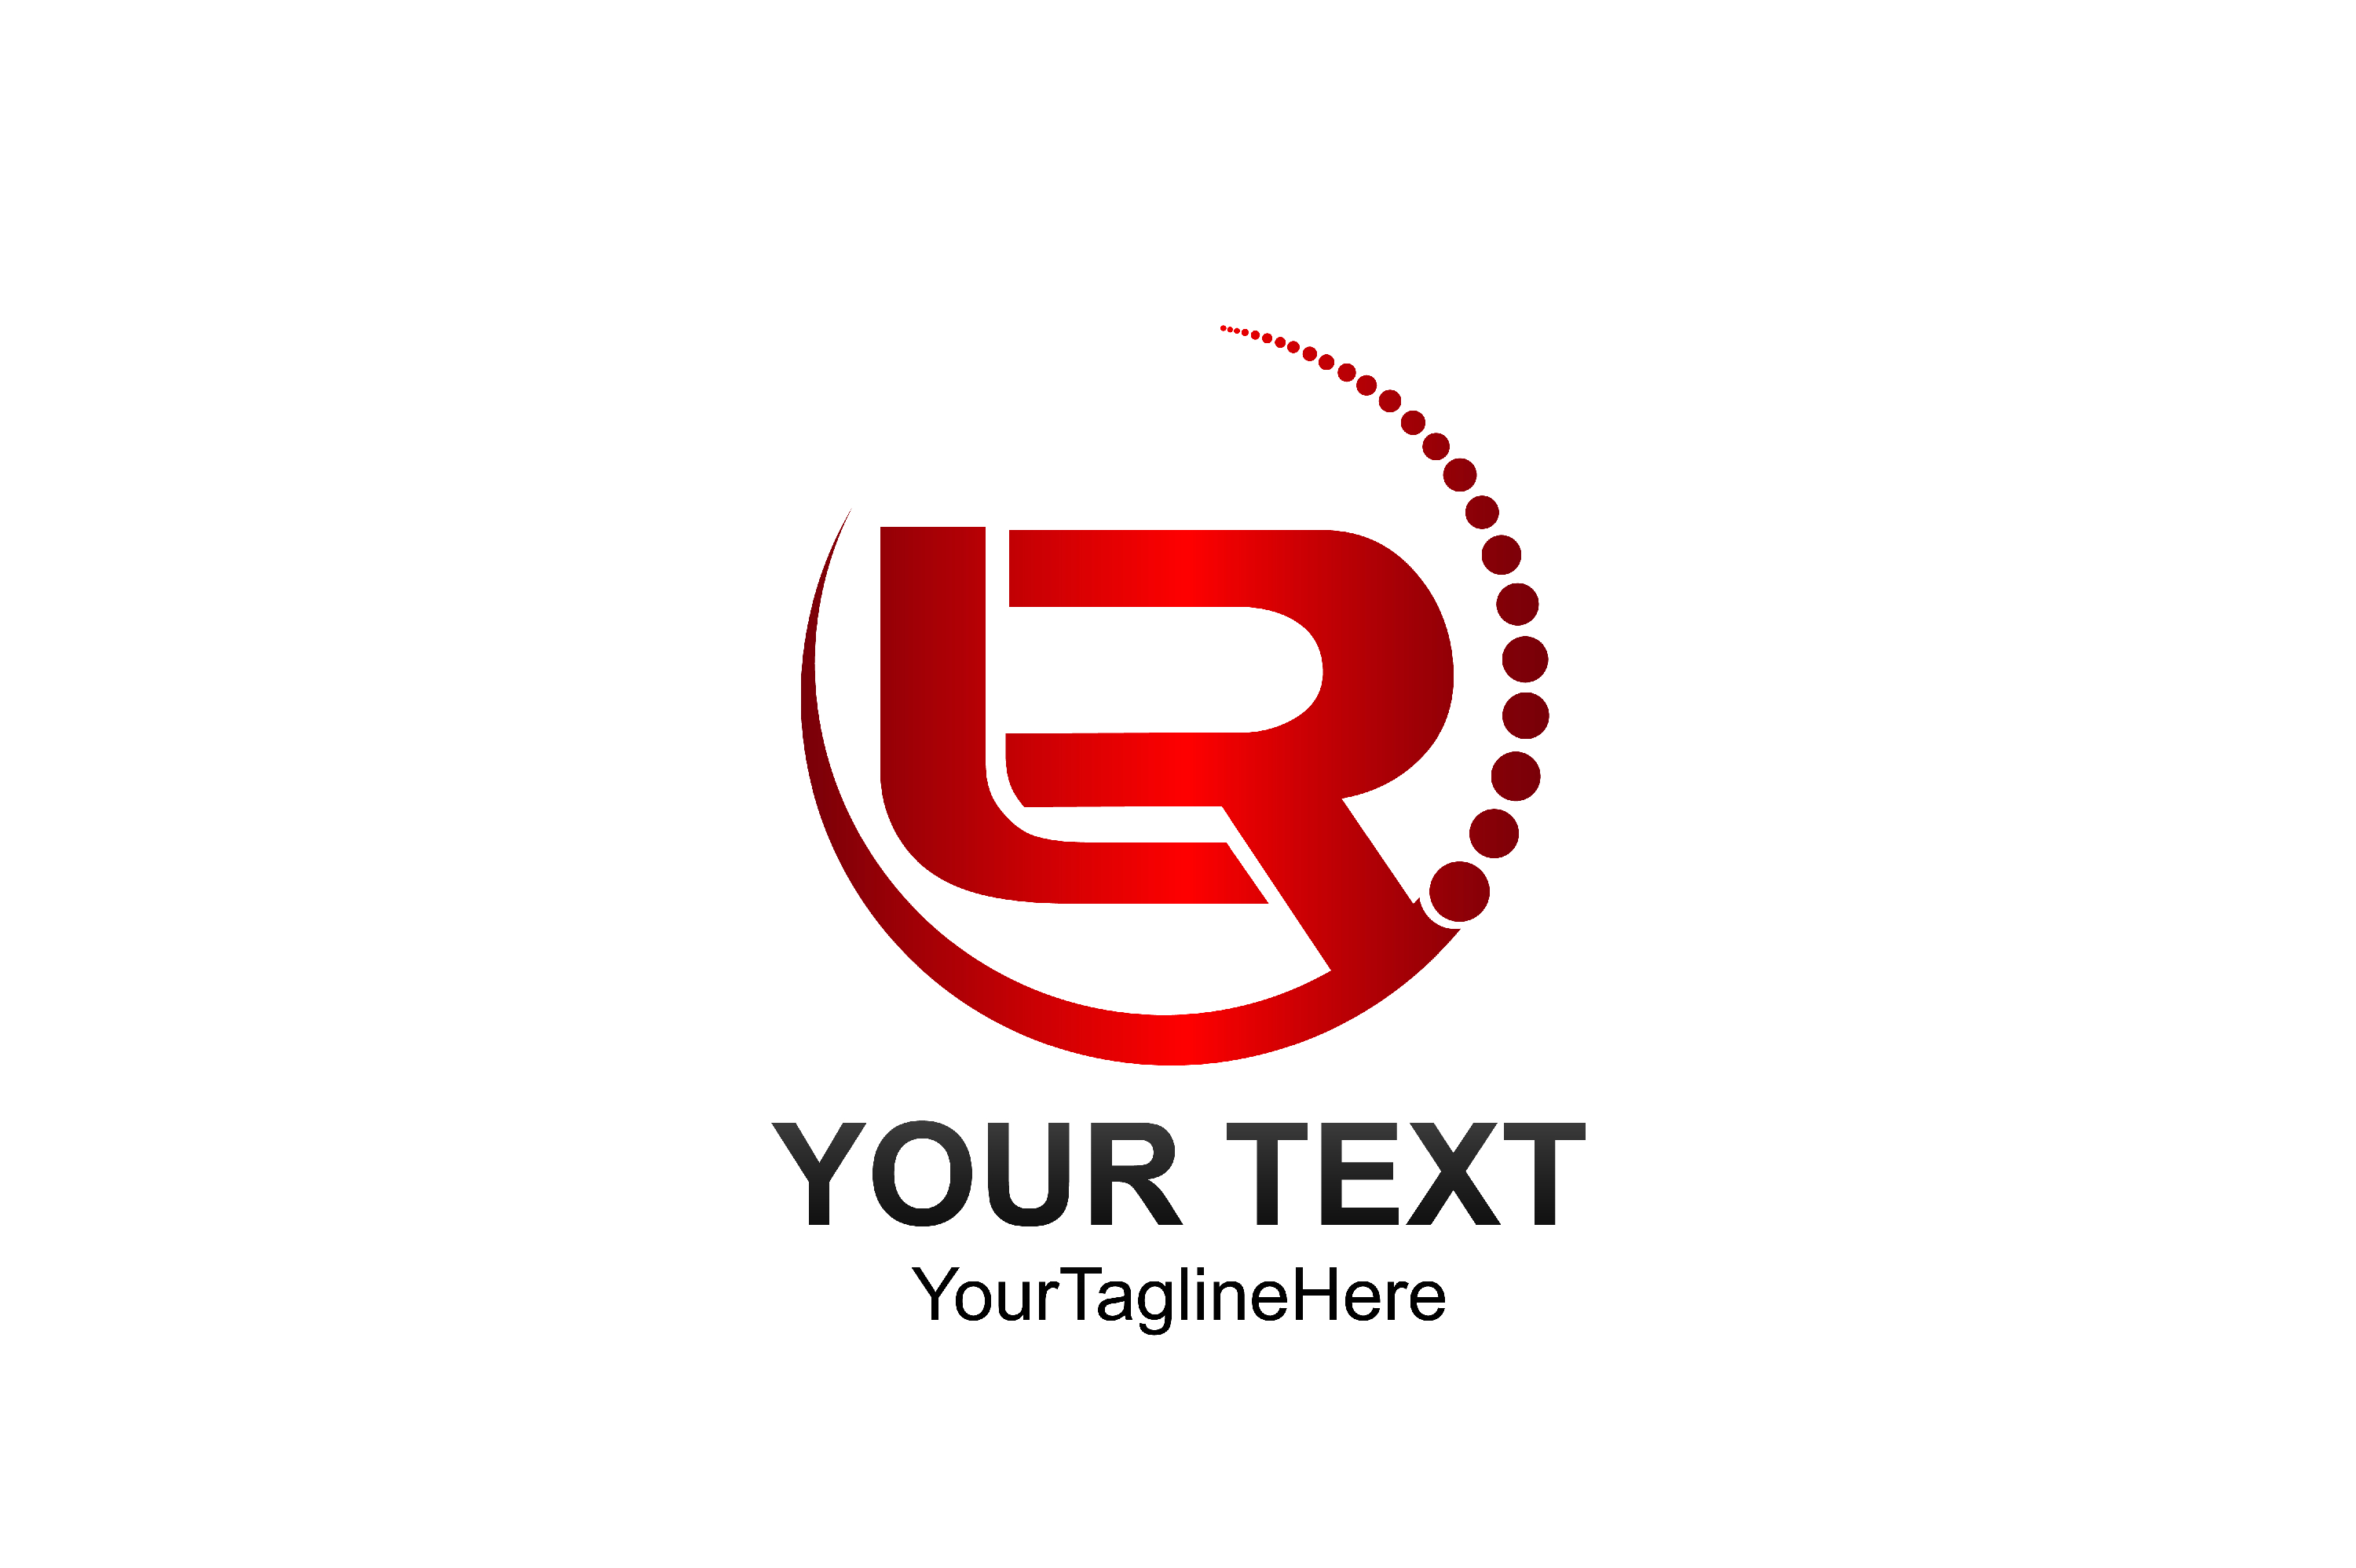 Download Free Initial Letter Lr Logo Template Colored Red Circle Swoosh Design for Cricut Explore, Silhouette and other cutting machines.